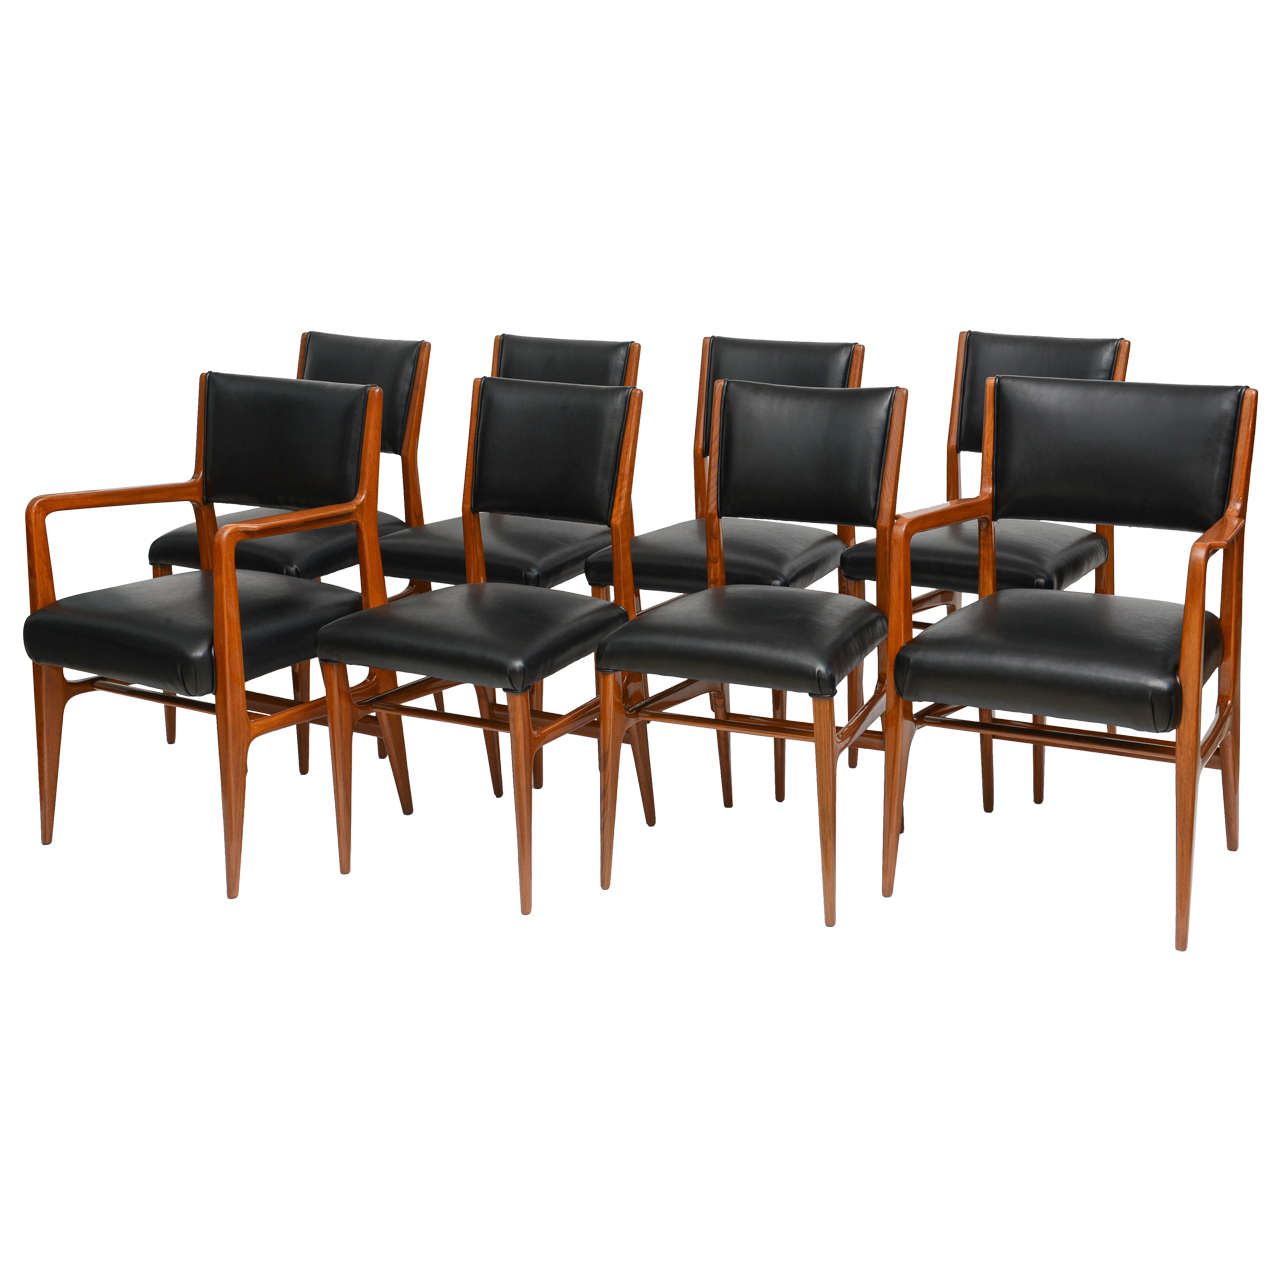 Fine Set Of 12 Italian Modern Dining Chairs, Gio Ponti For